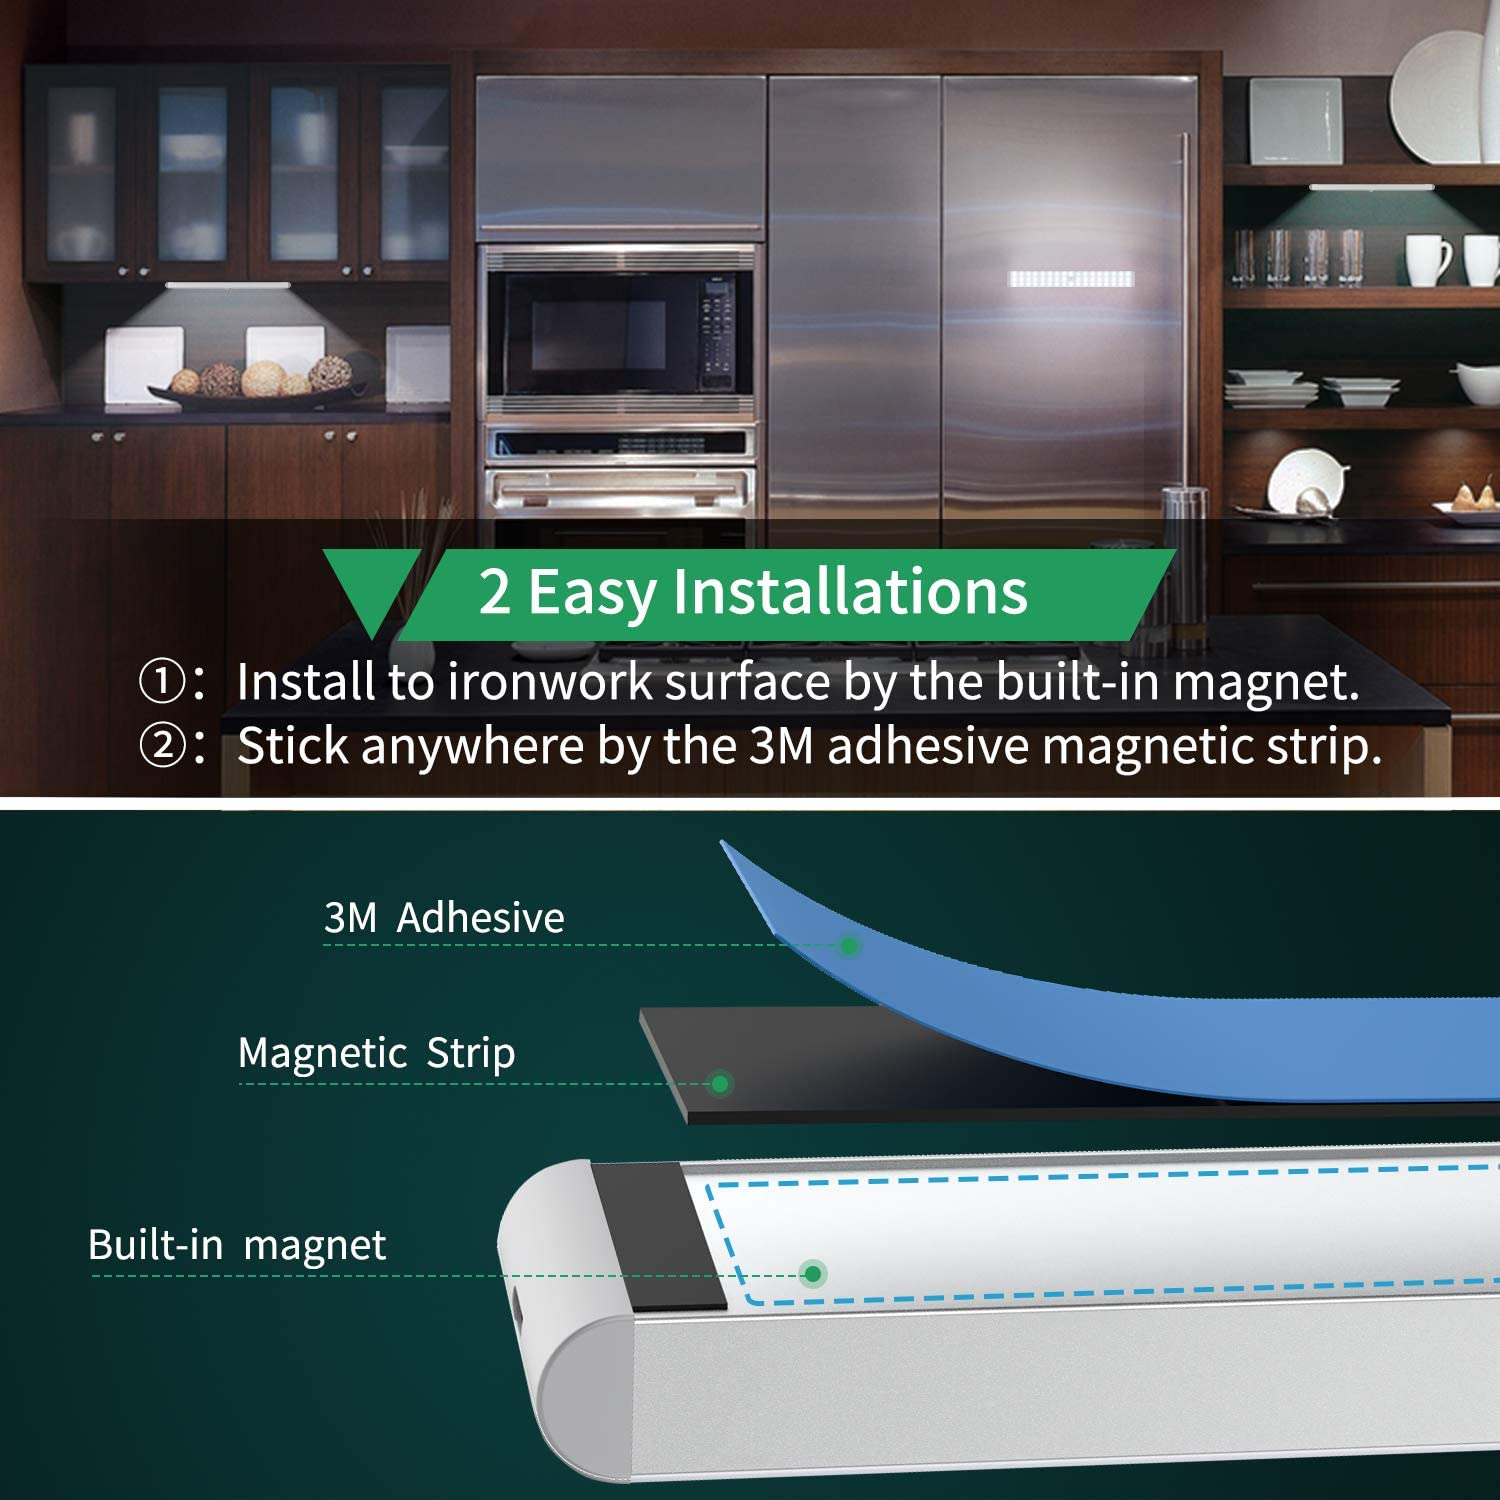 Led Closet Light 50 Led Dimmer Usb Rechargeable Motion Sensor Light Under Cabinet Wireless Stick Anywhere Night Light Bar With 1500mah Battery For Stairs Wardrobe Kitchen 2 Packs Walmart Com Walmart Com